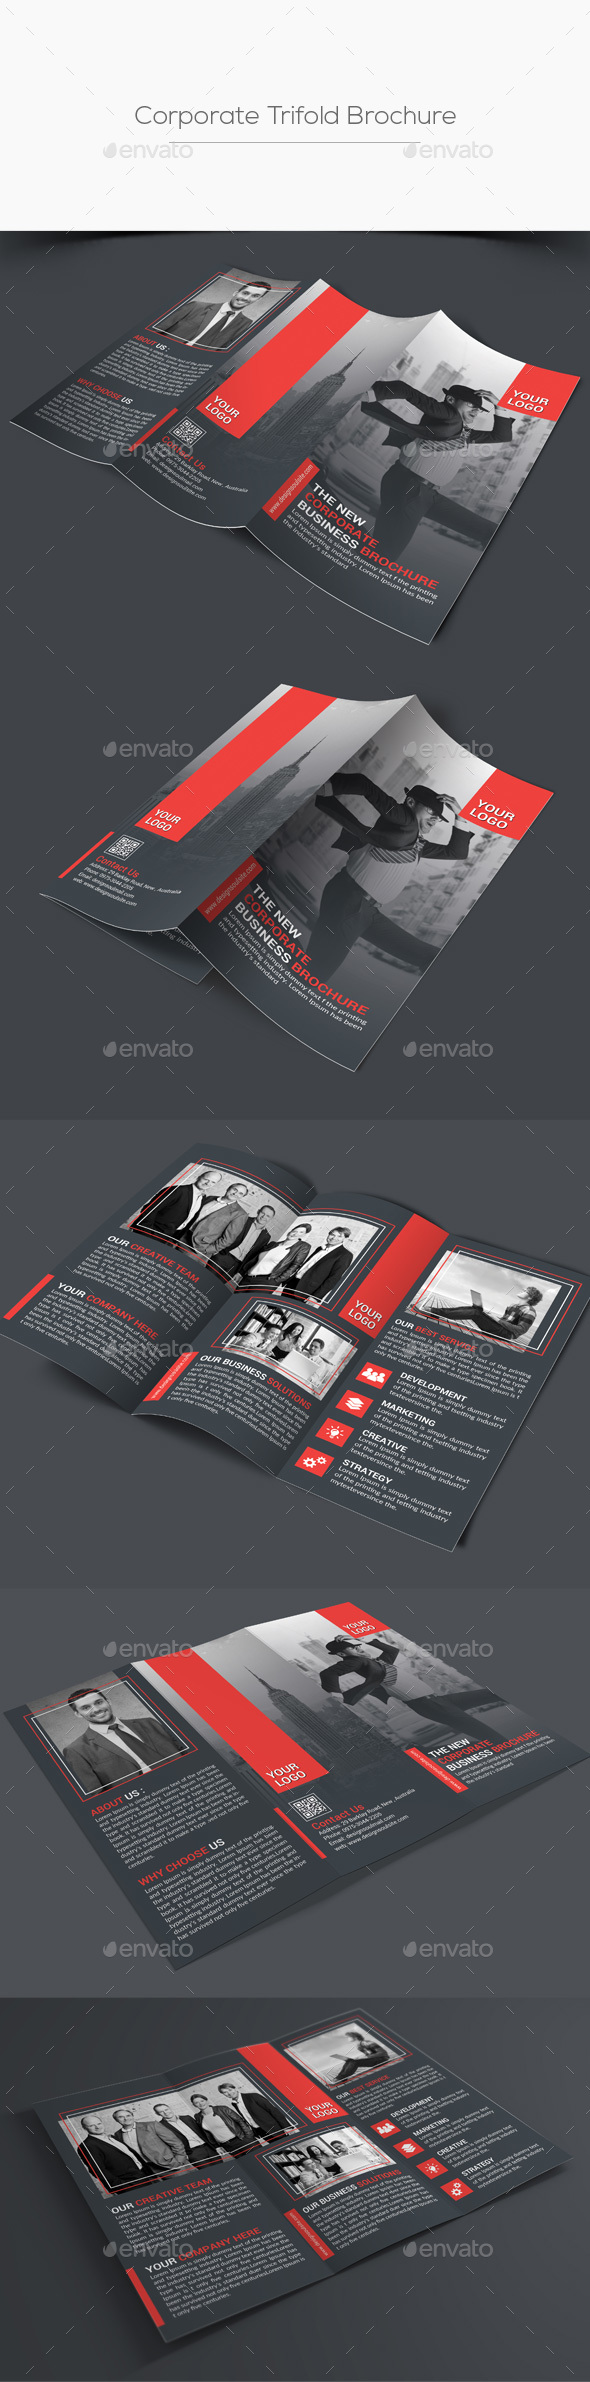 Corporate Trifold Brochure Templates PSD. Download here: http ...